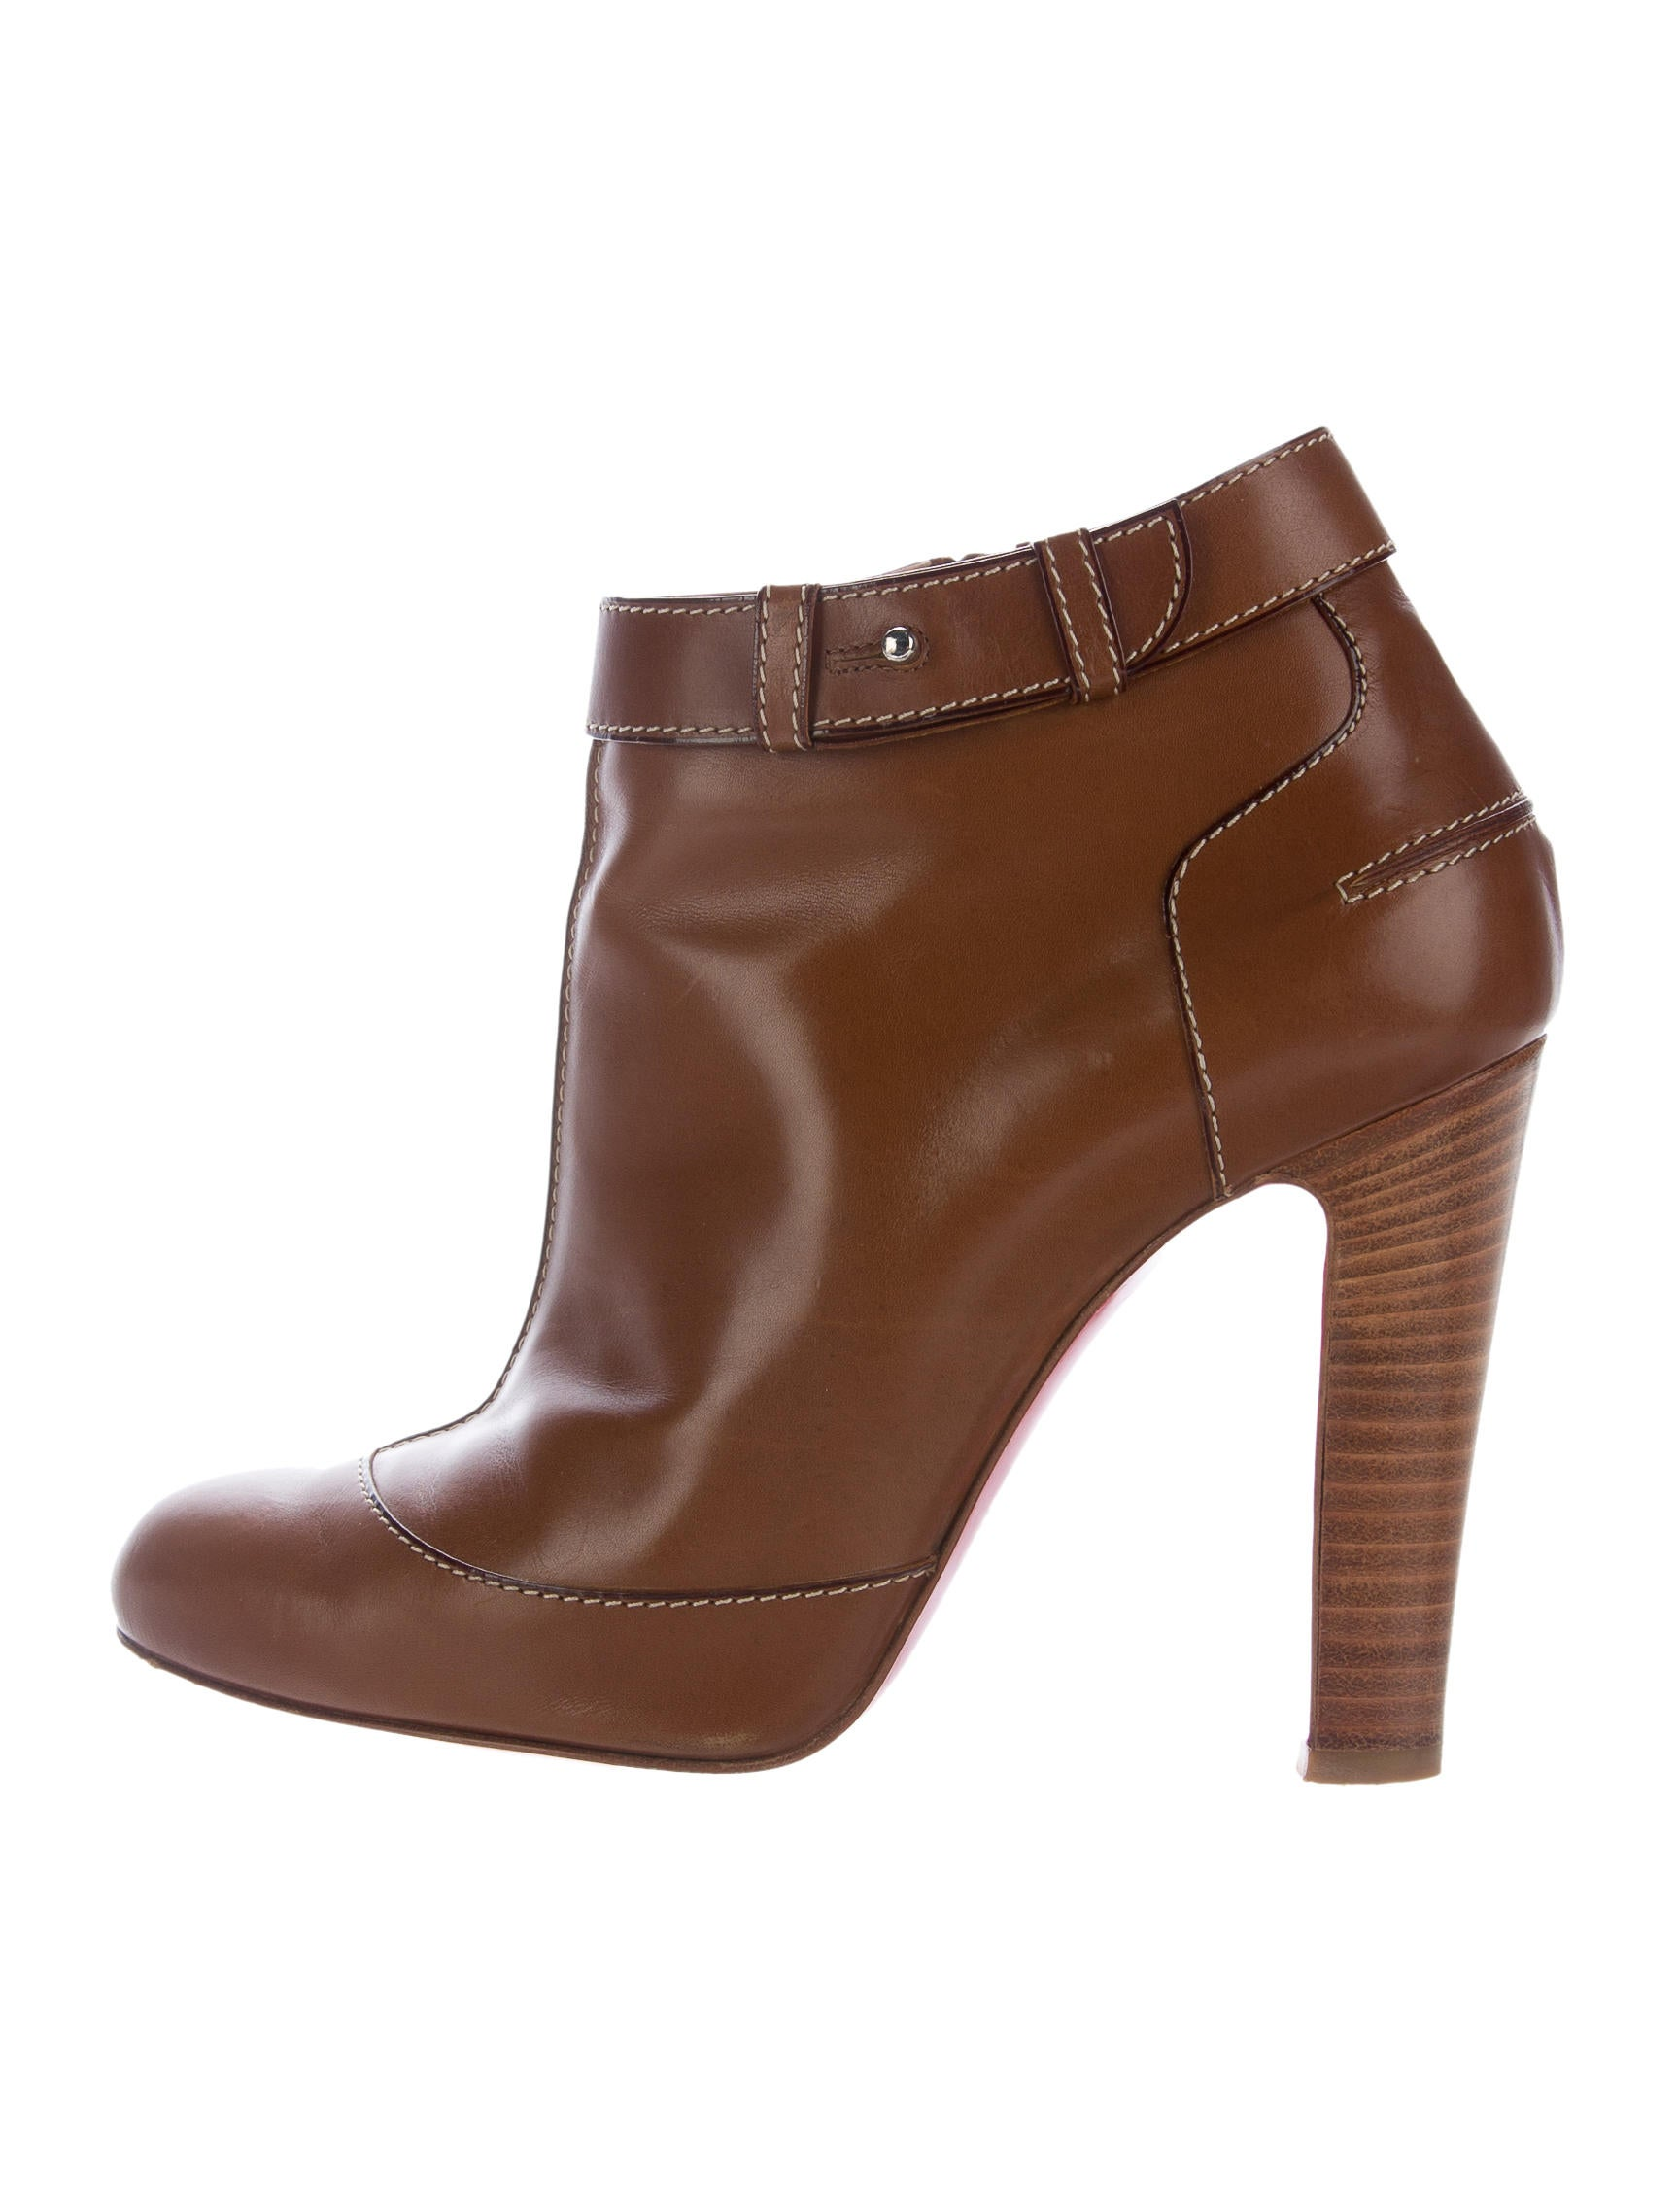 Shop from a variety of luxury leather boots featuring platforms, biker boots, ankle and riding boots. Discover the range of women's boots from Burberry. Shop from a variety of luxury leather boots featuring platforms, biker boots, ankle and riding boots.